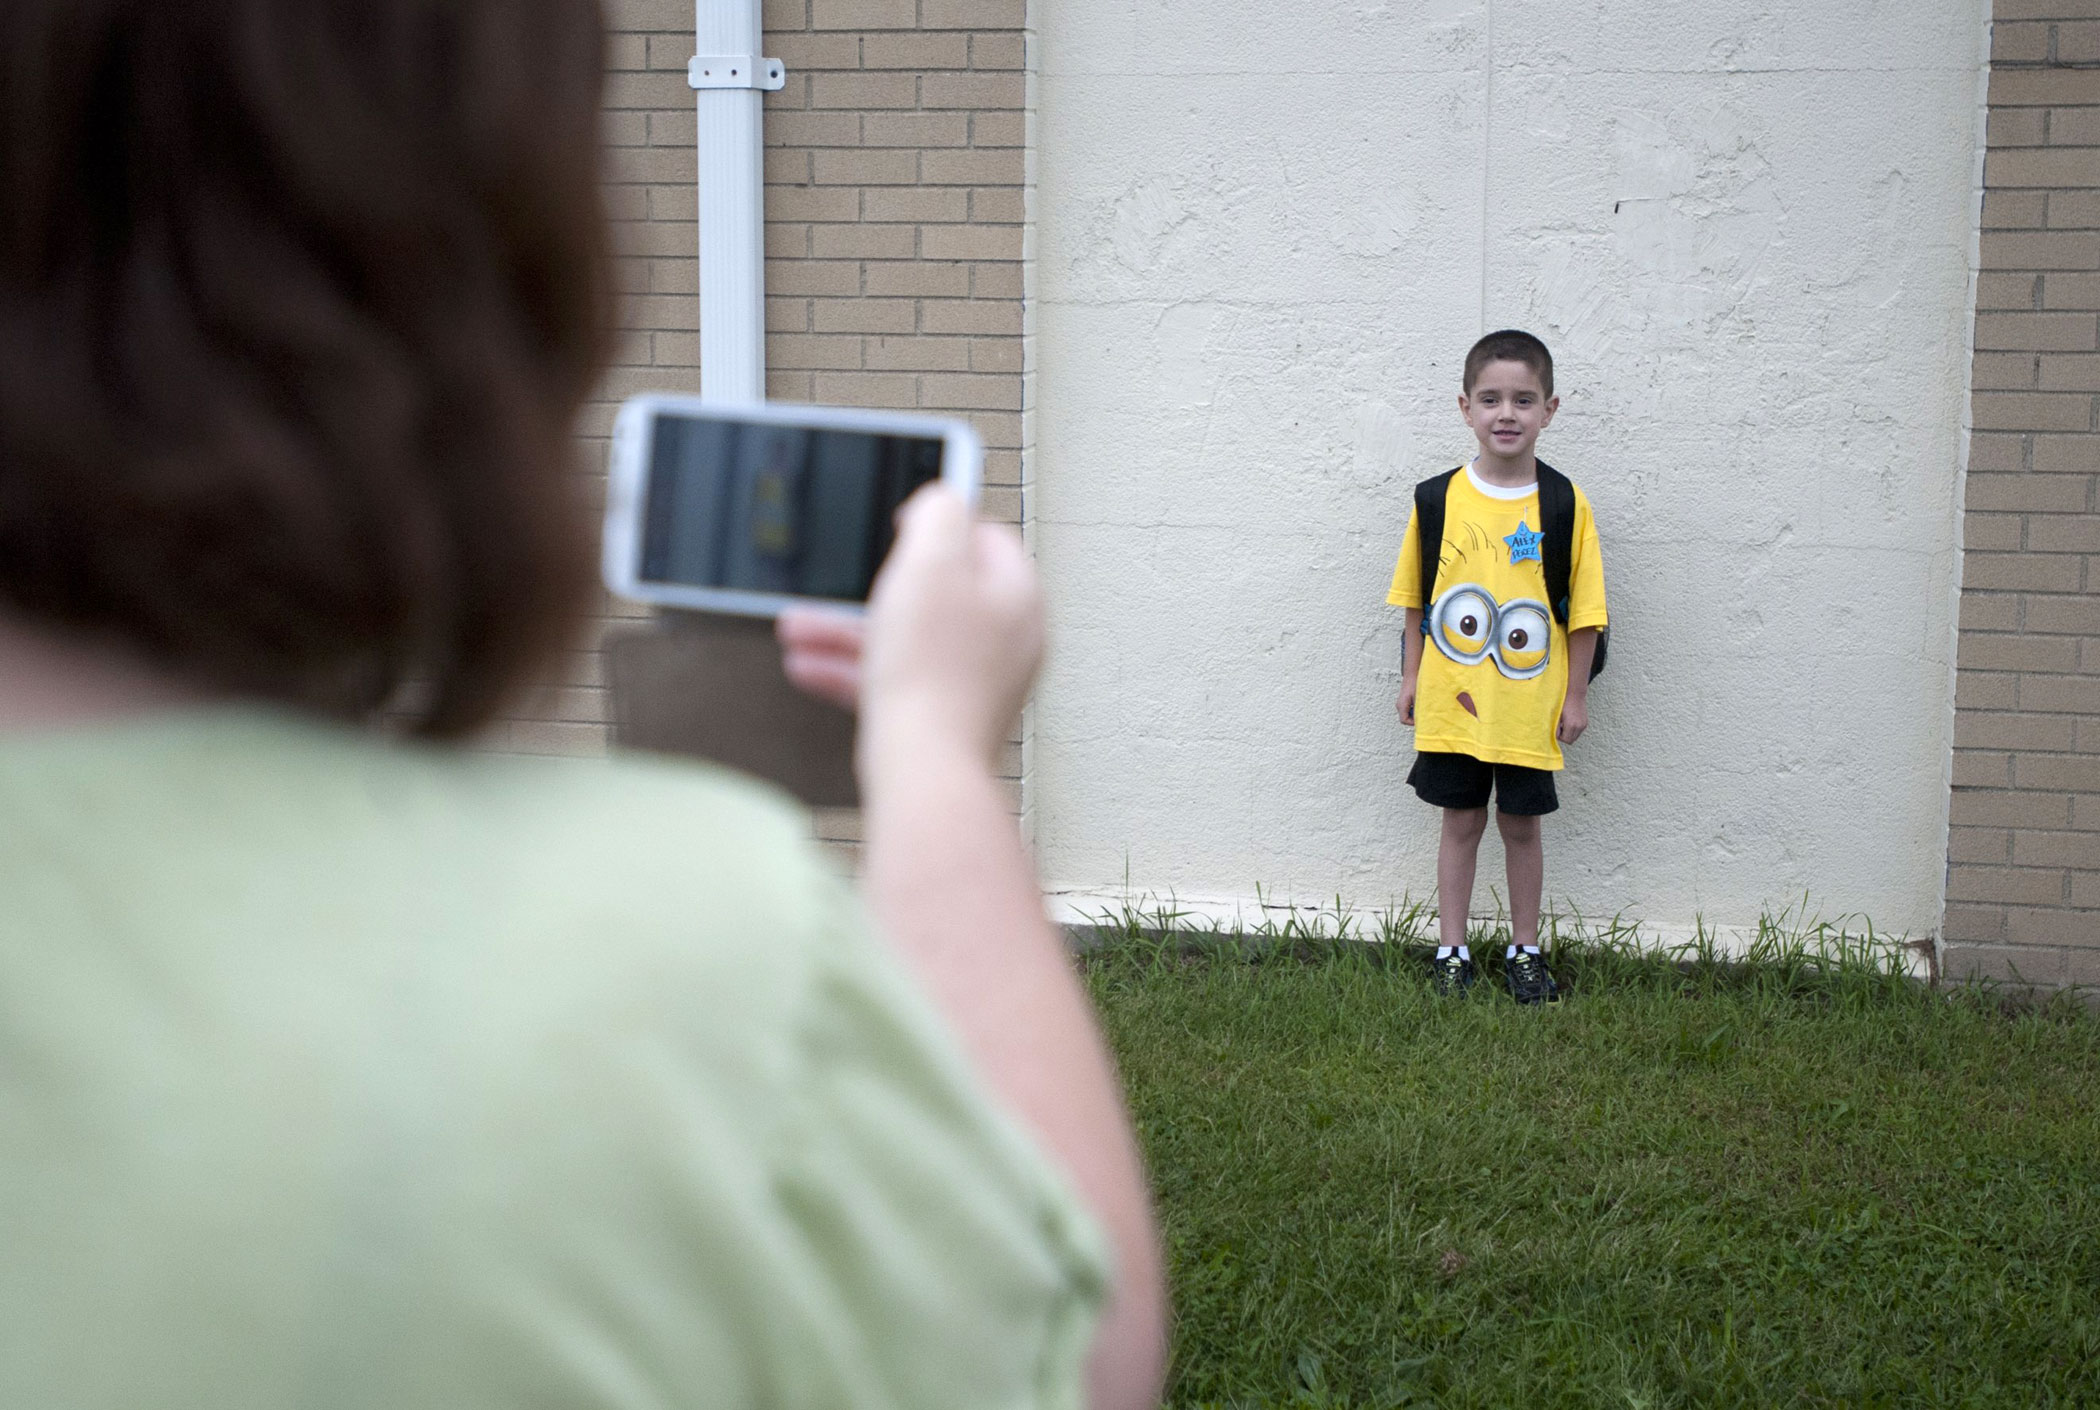 Alex Perez, 5, has his picture taken before the first day of school by Kelly Cunningham at Northwest's Parnall Elementary School on Sept. 2, 2014 in Jackson, MI.